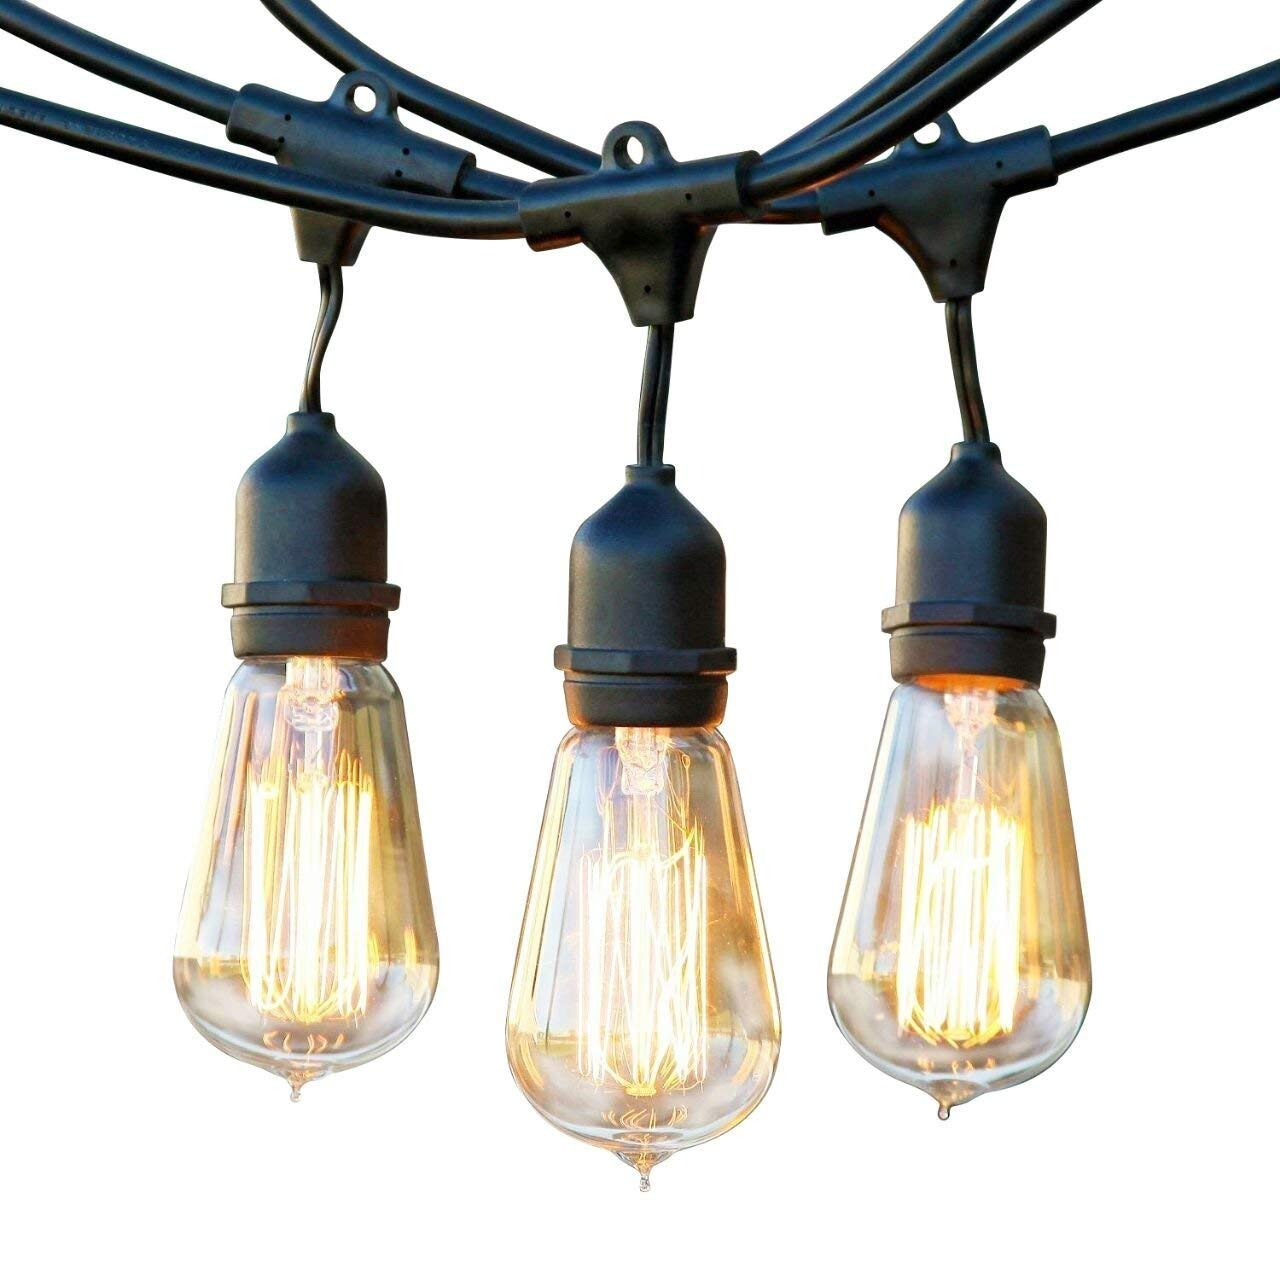 Brightech Ambience Pro - Waterproof Incandescent Outdoor String Lights - Hanging Vintage Edison Filament Bulbs - 48 Ft Industrial Lights Create Ambience On Your Deck, Balcony by Brightech